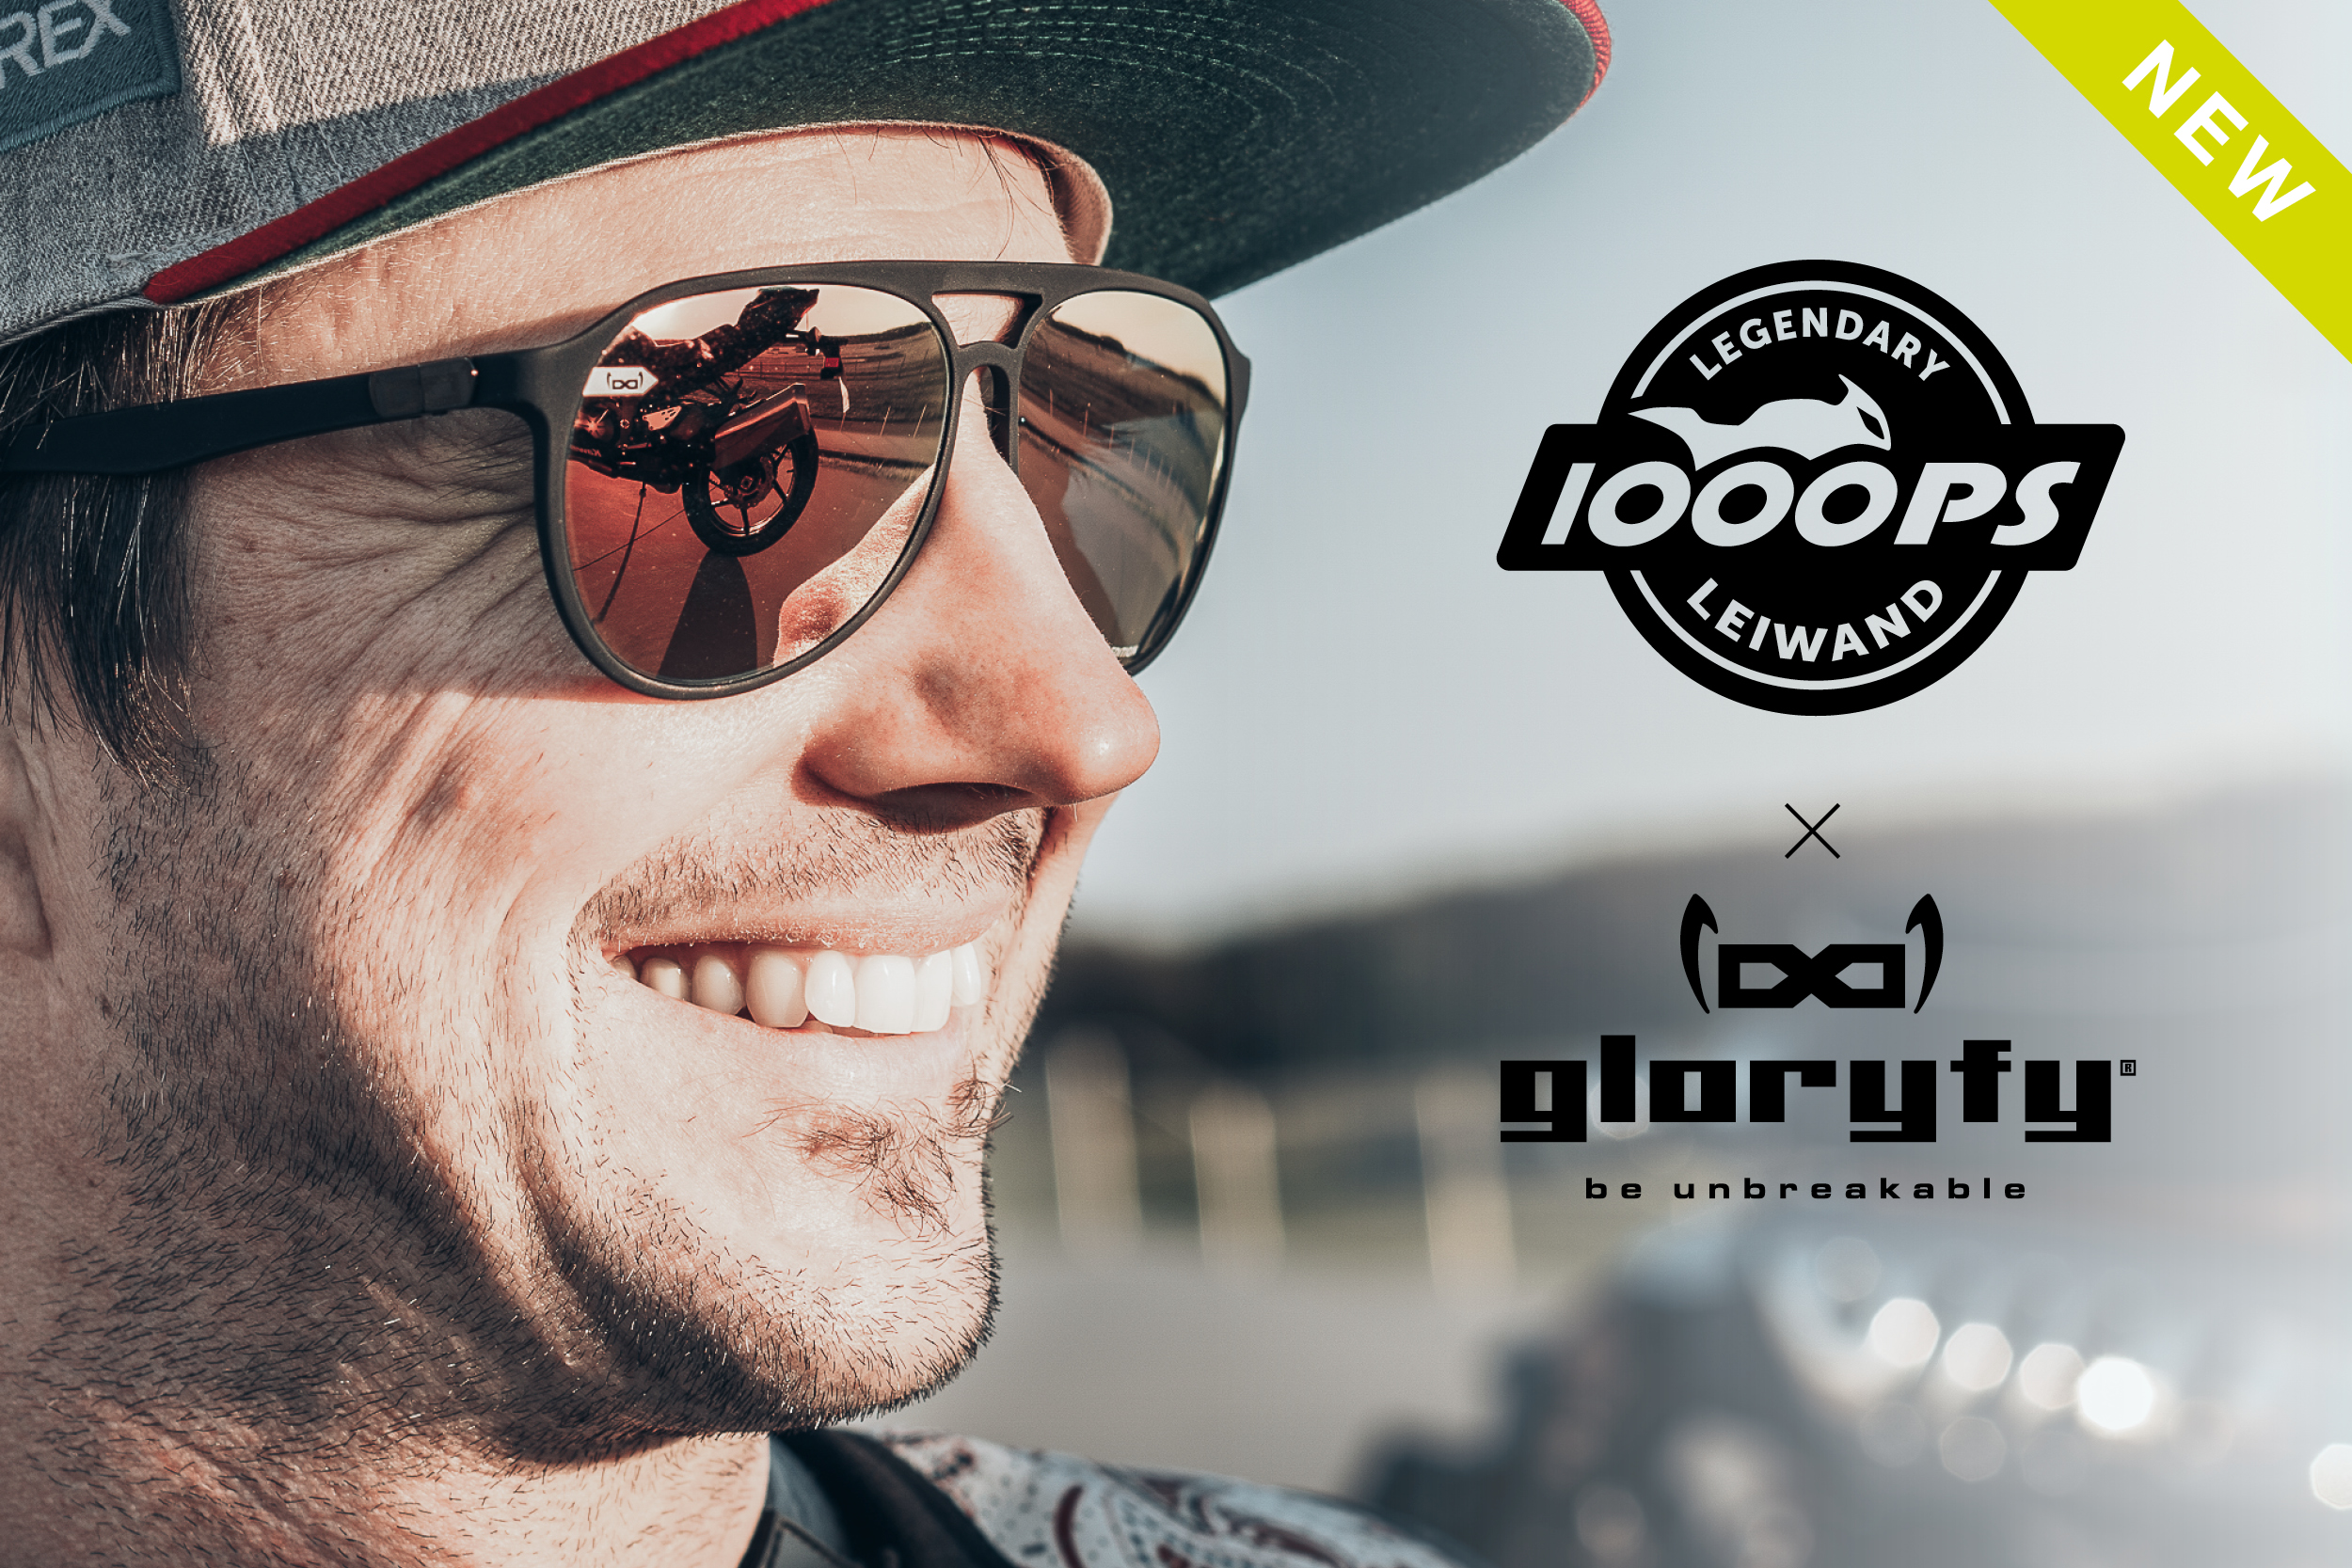 gloryfy-unbreakable-Sonnenbrille-1000ps-Edition